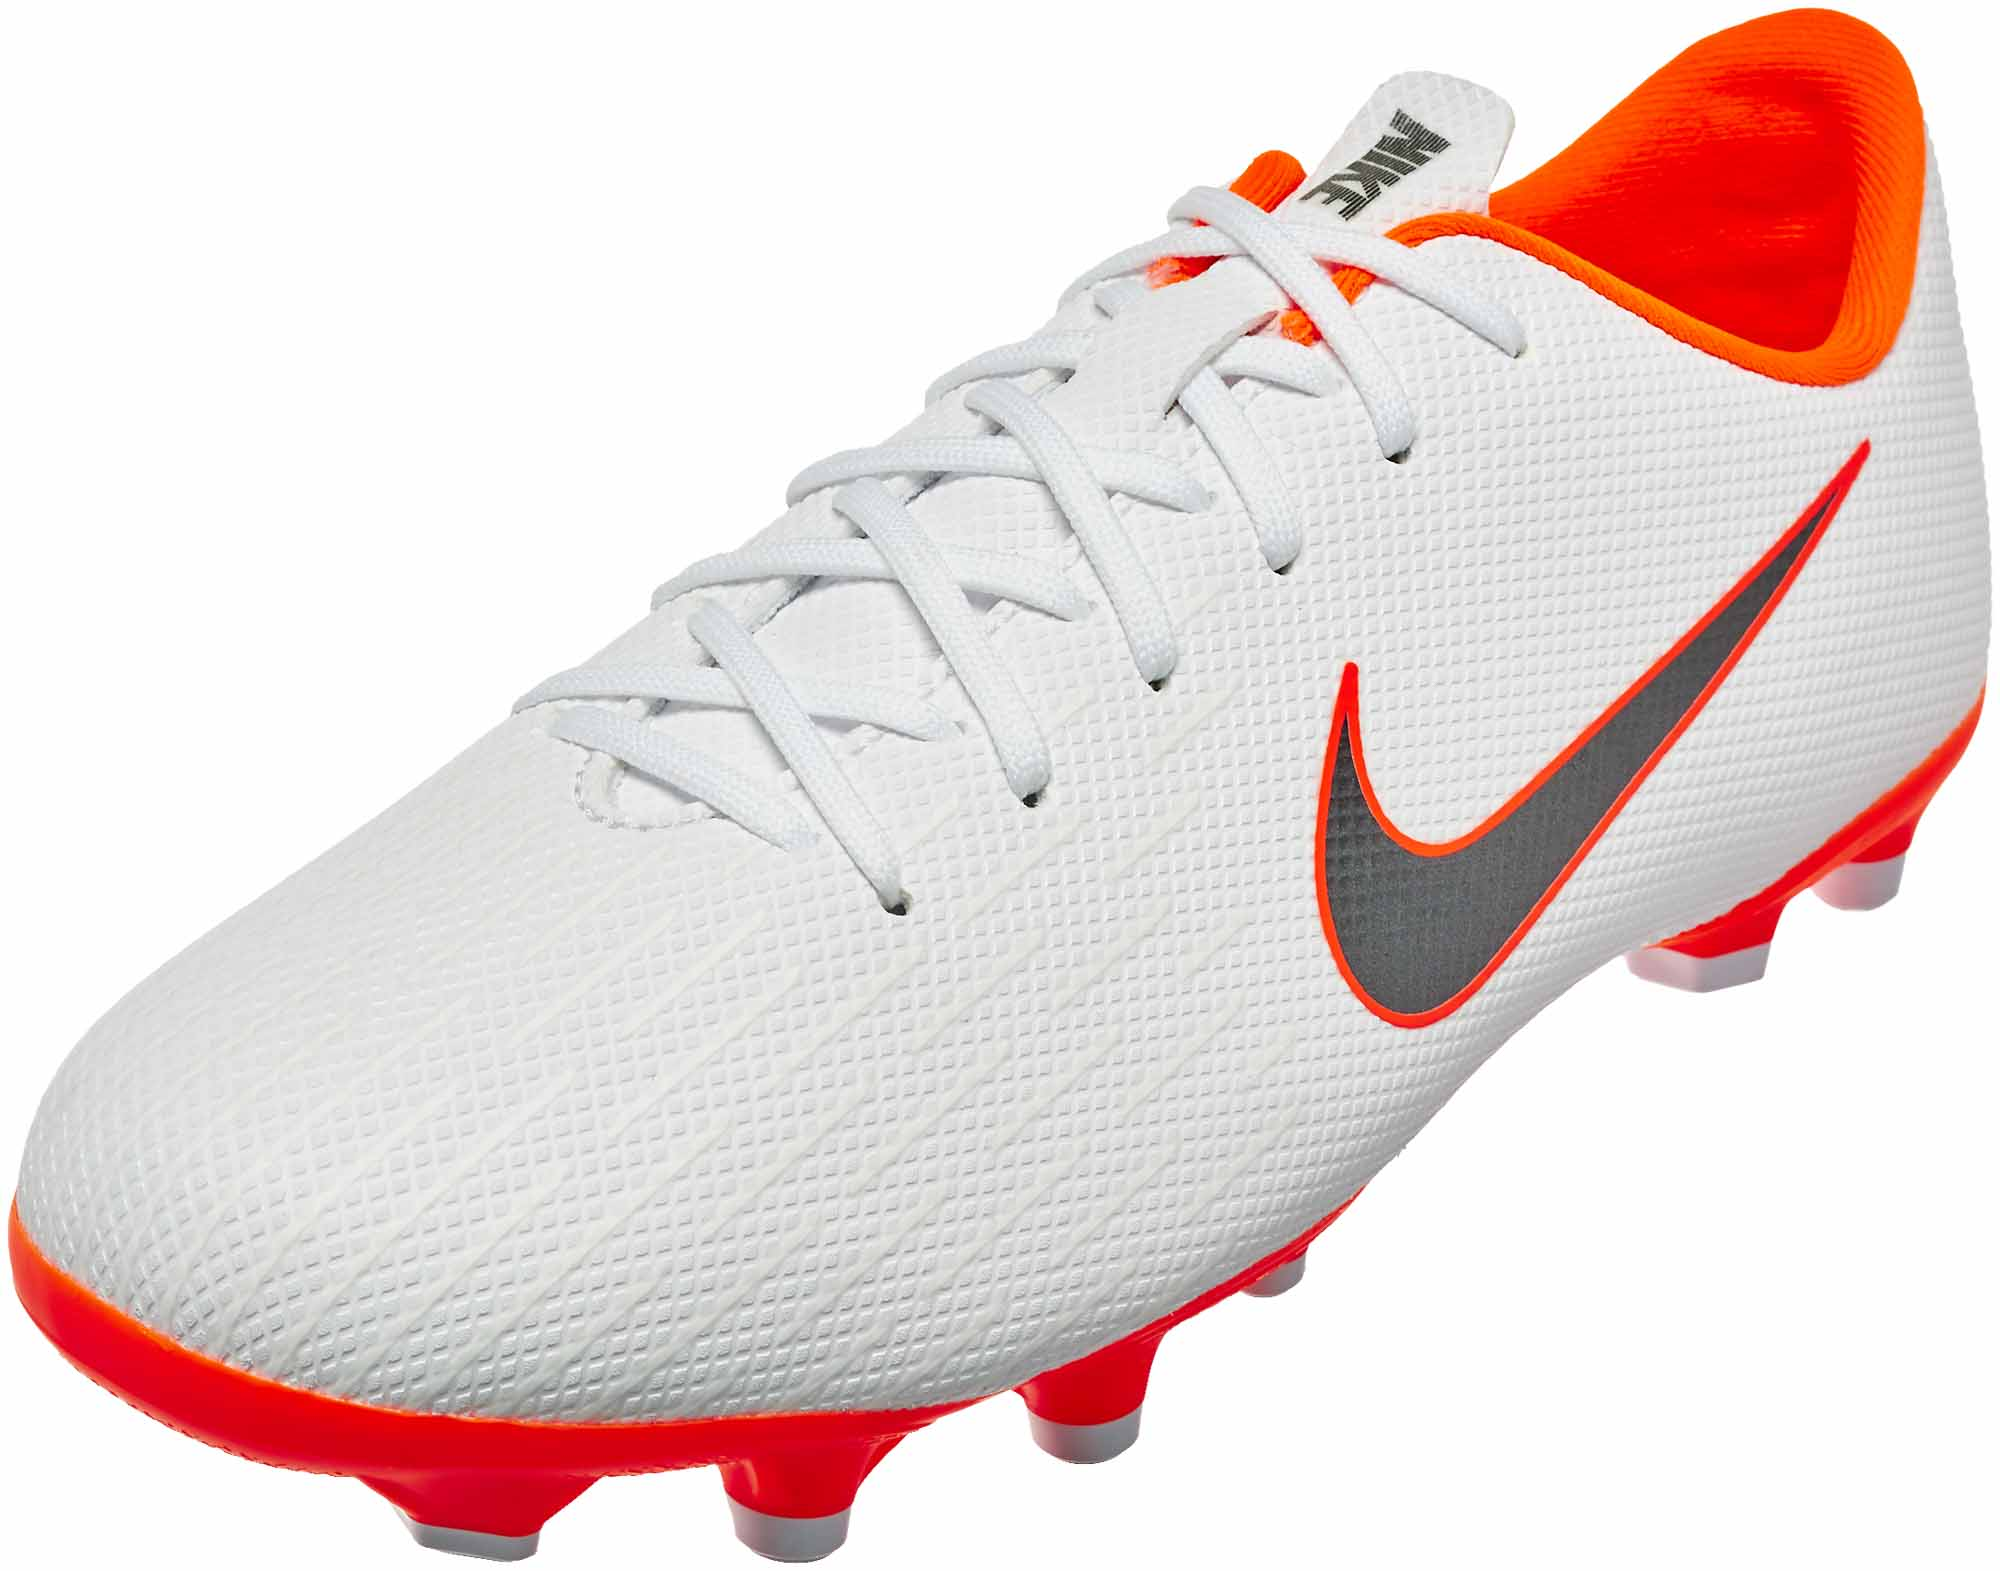 Nike Mercurial Vapor 12 Academy MG – Youth – White Metallic Cool Grey Total 7ab98fea7793